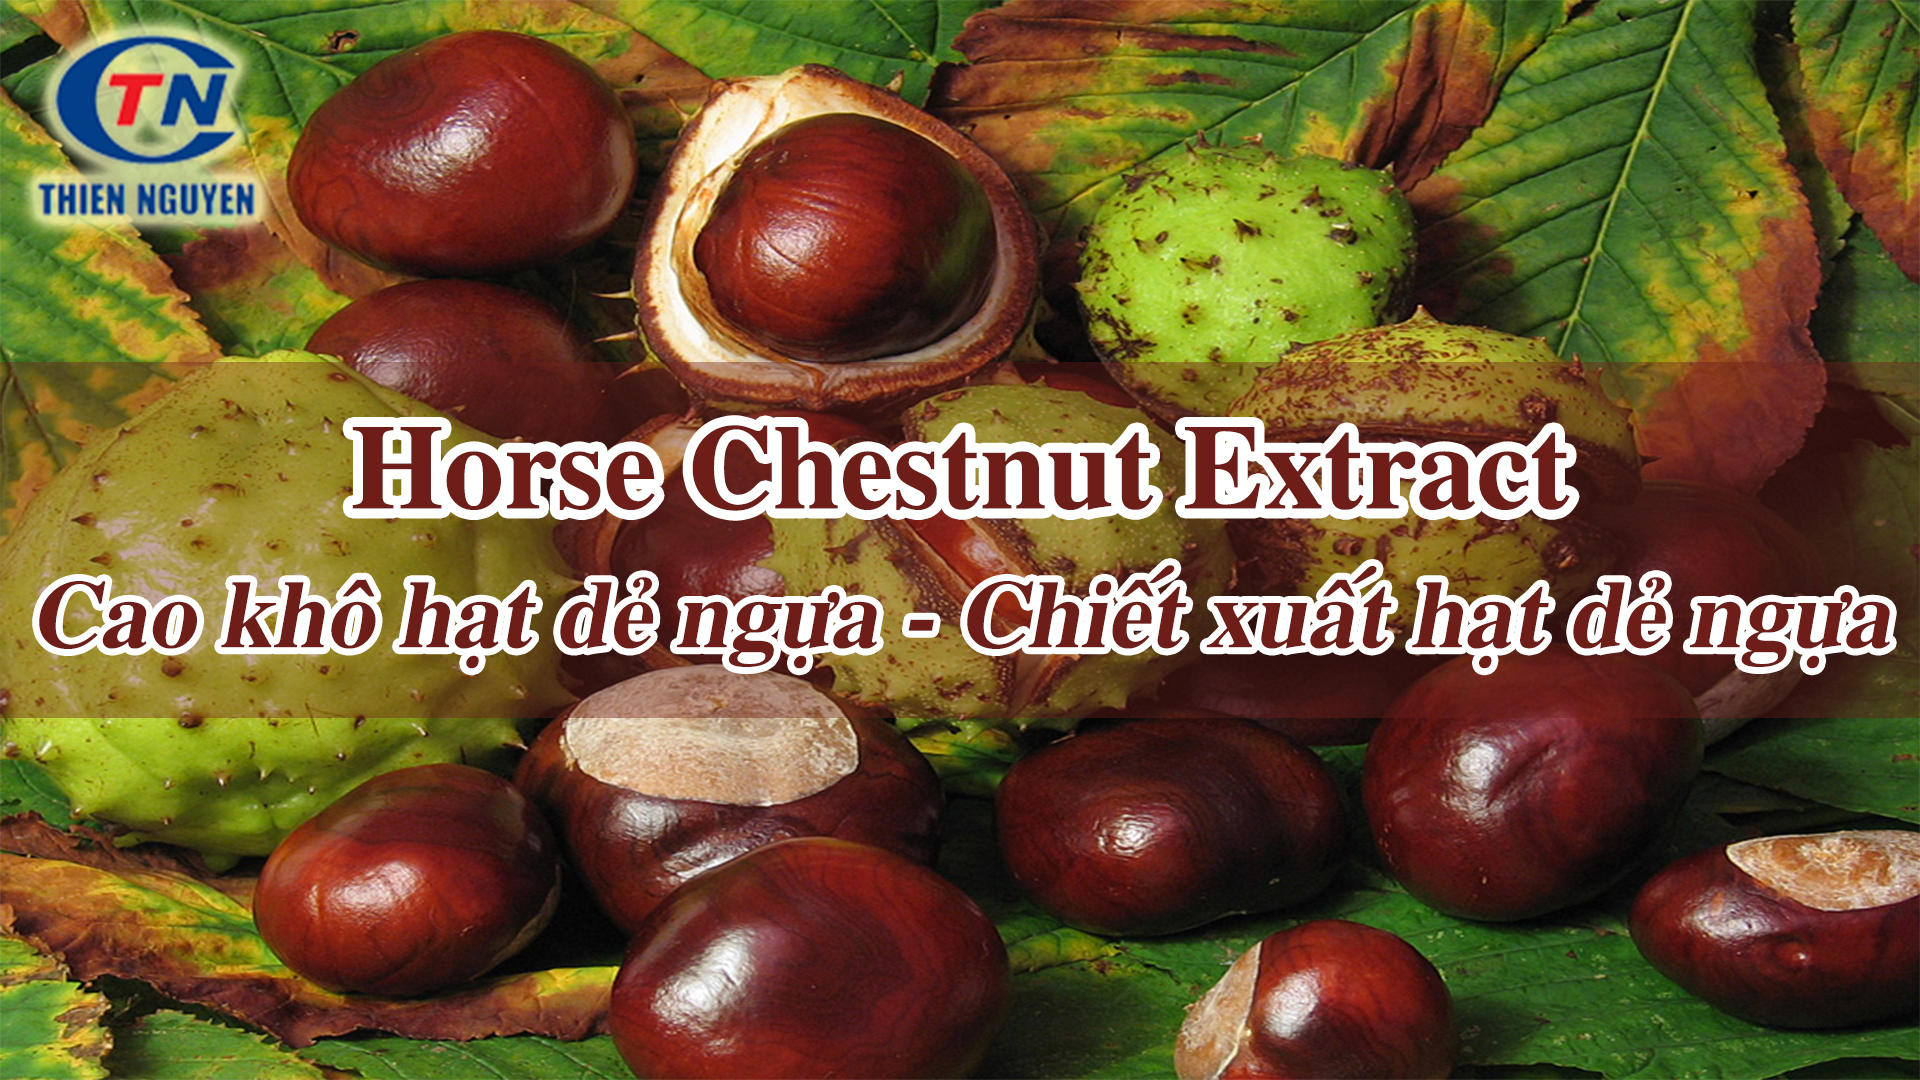 chiết xuất hat dẻ ngựa (cao hạt dẻ ngựa) horse chestnut extract